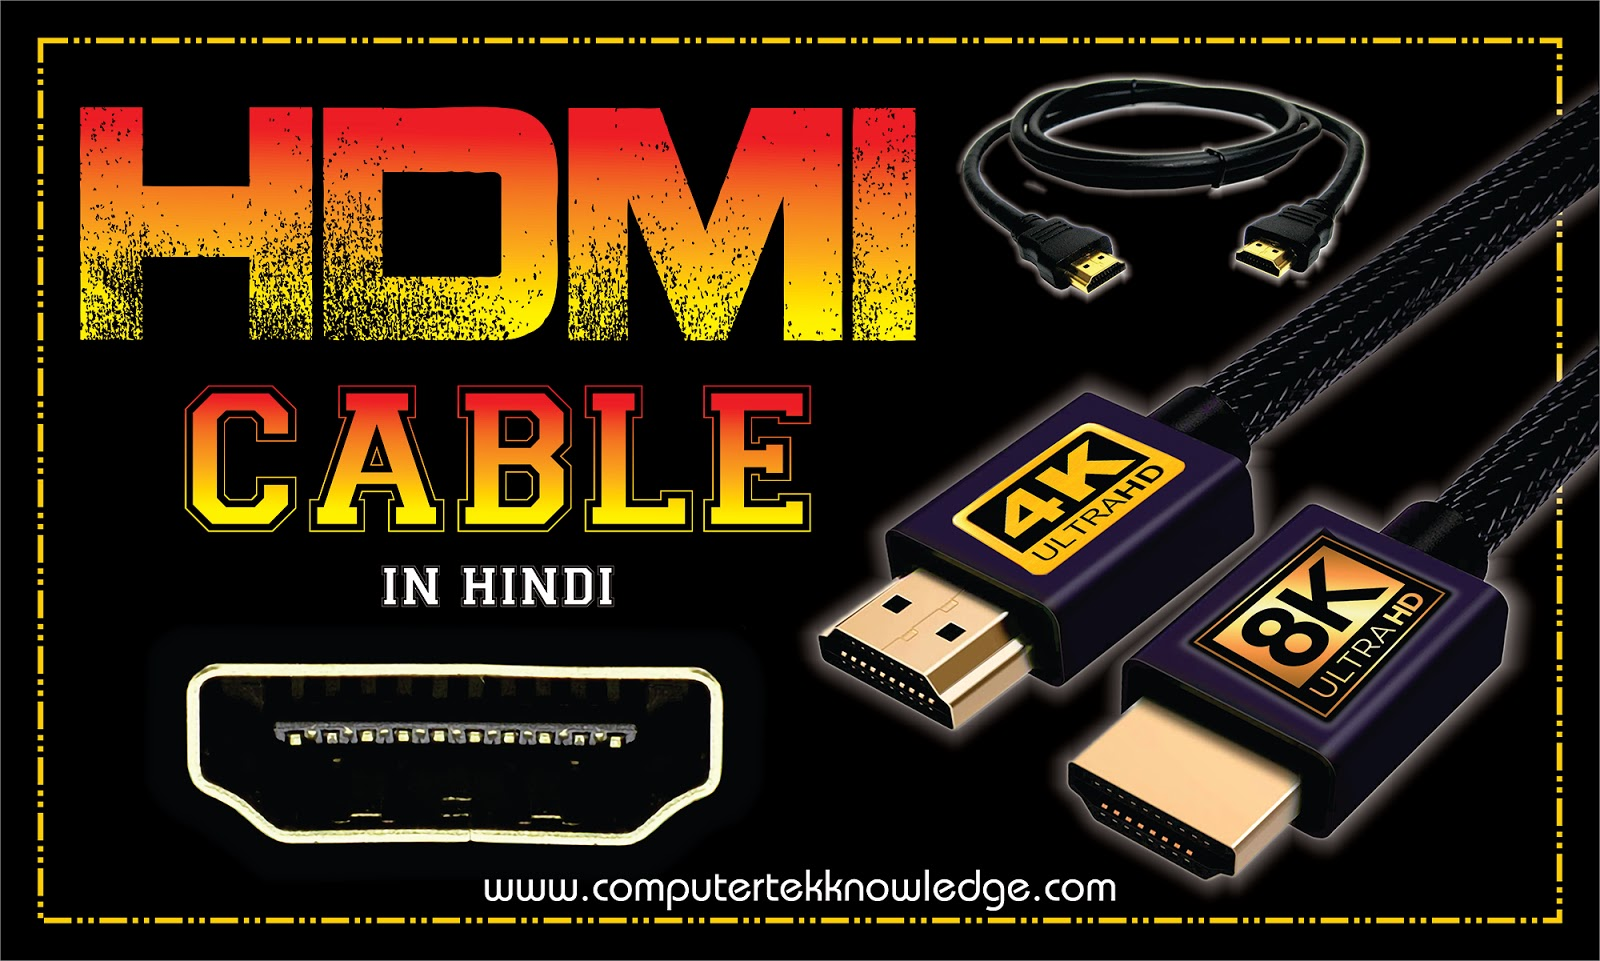 HDMI Cable in Hindi